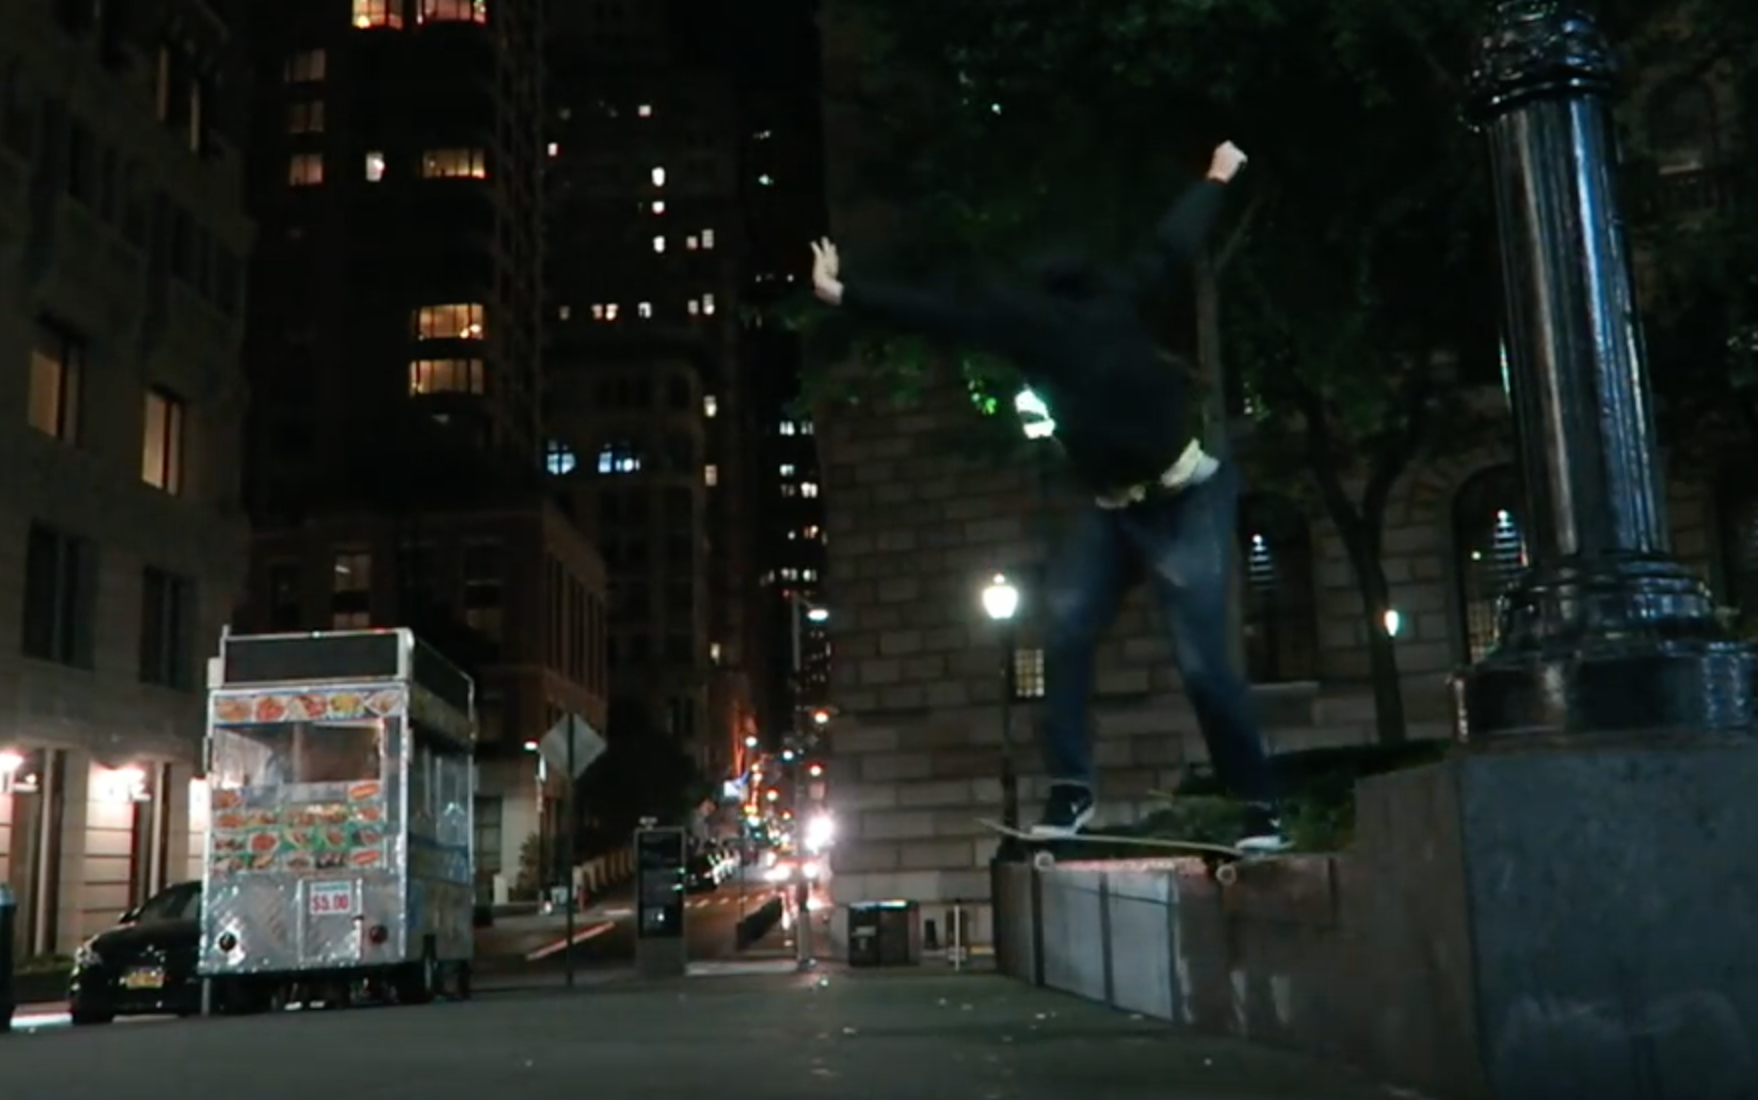 NYC Night Skating via Brett Conti (2016)